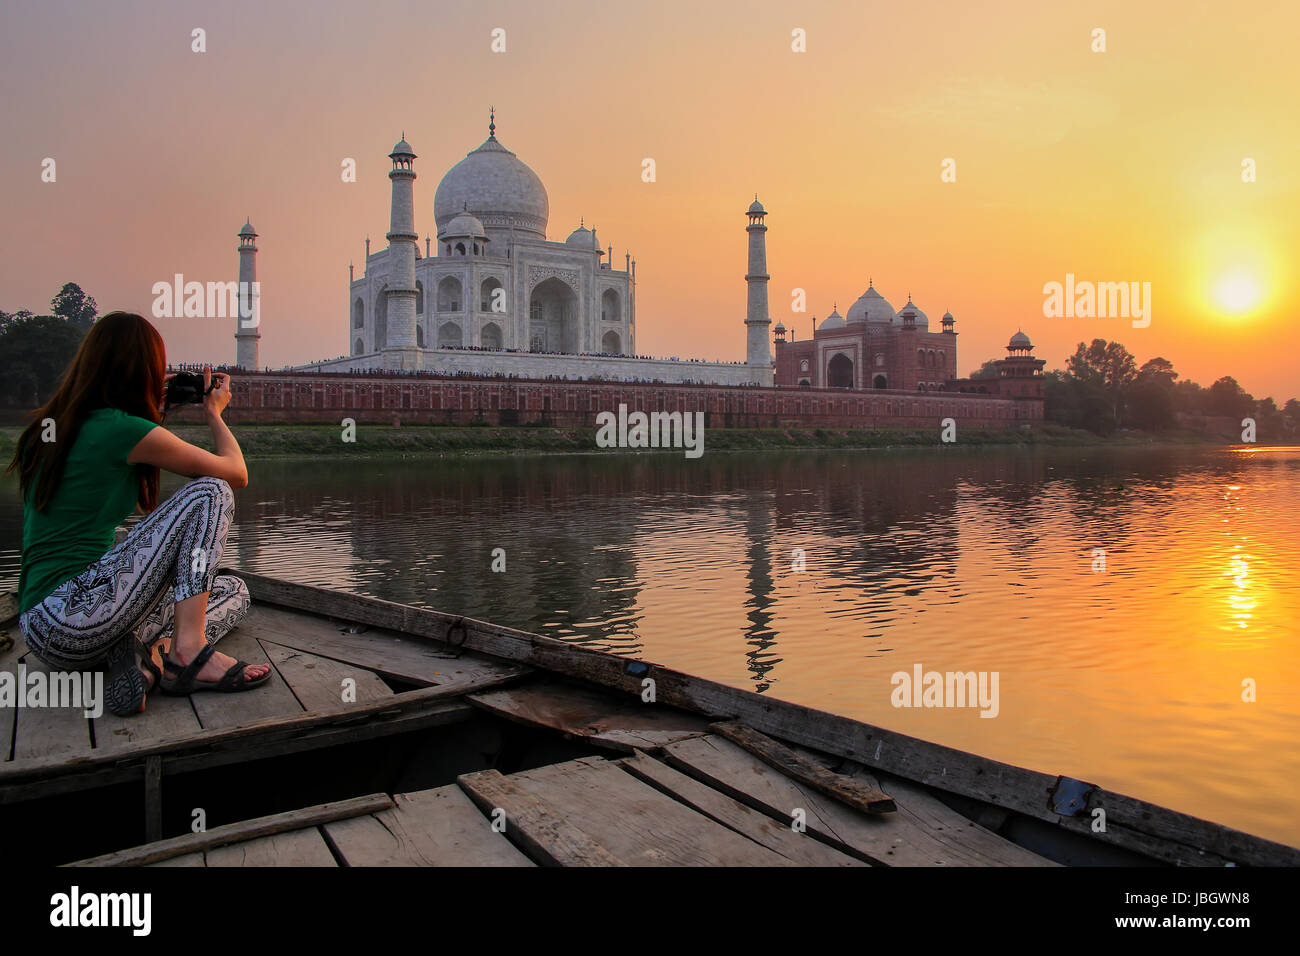 Woman watching sunset over Taj Mahal from a boat, Agra, India. It was build in 1632 by Emperor Shah Jahan as a memorial - Stock Image